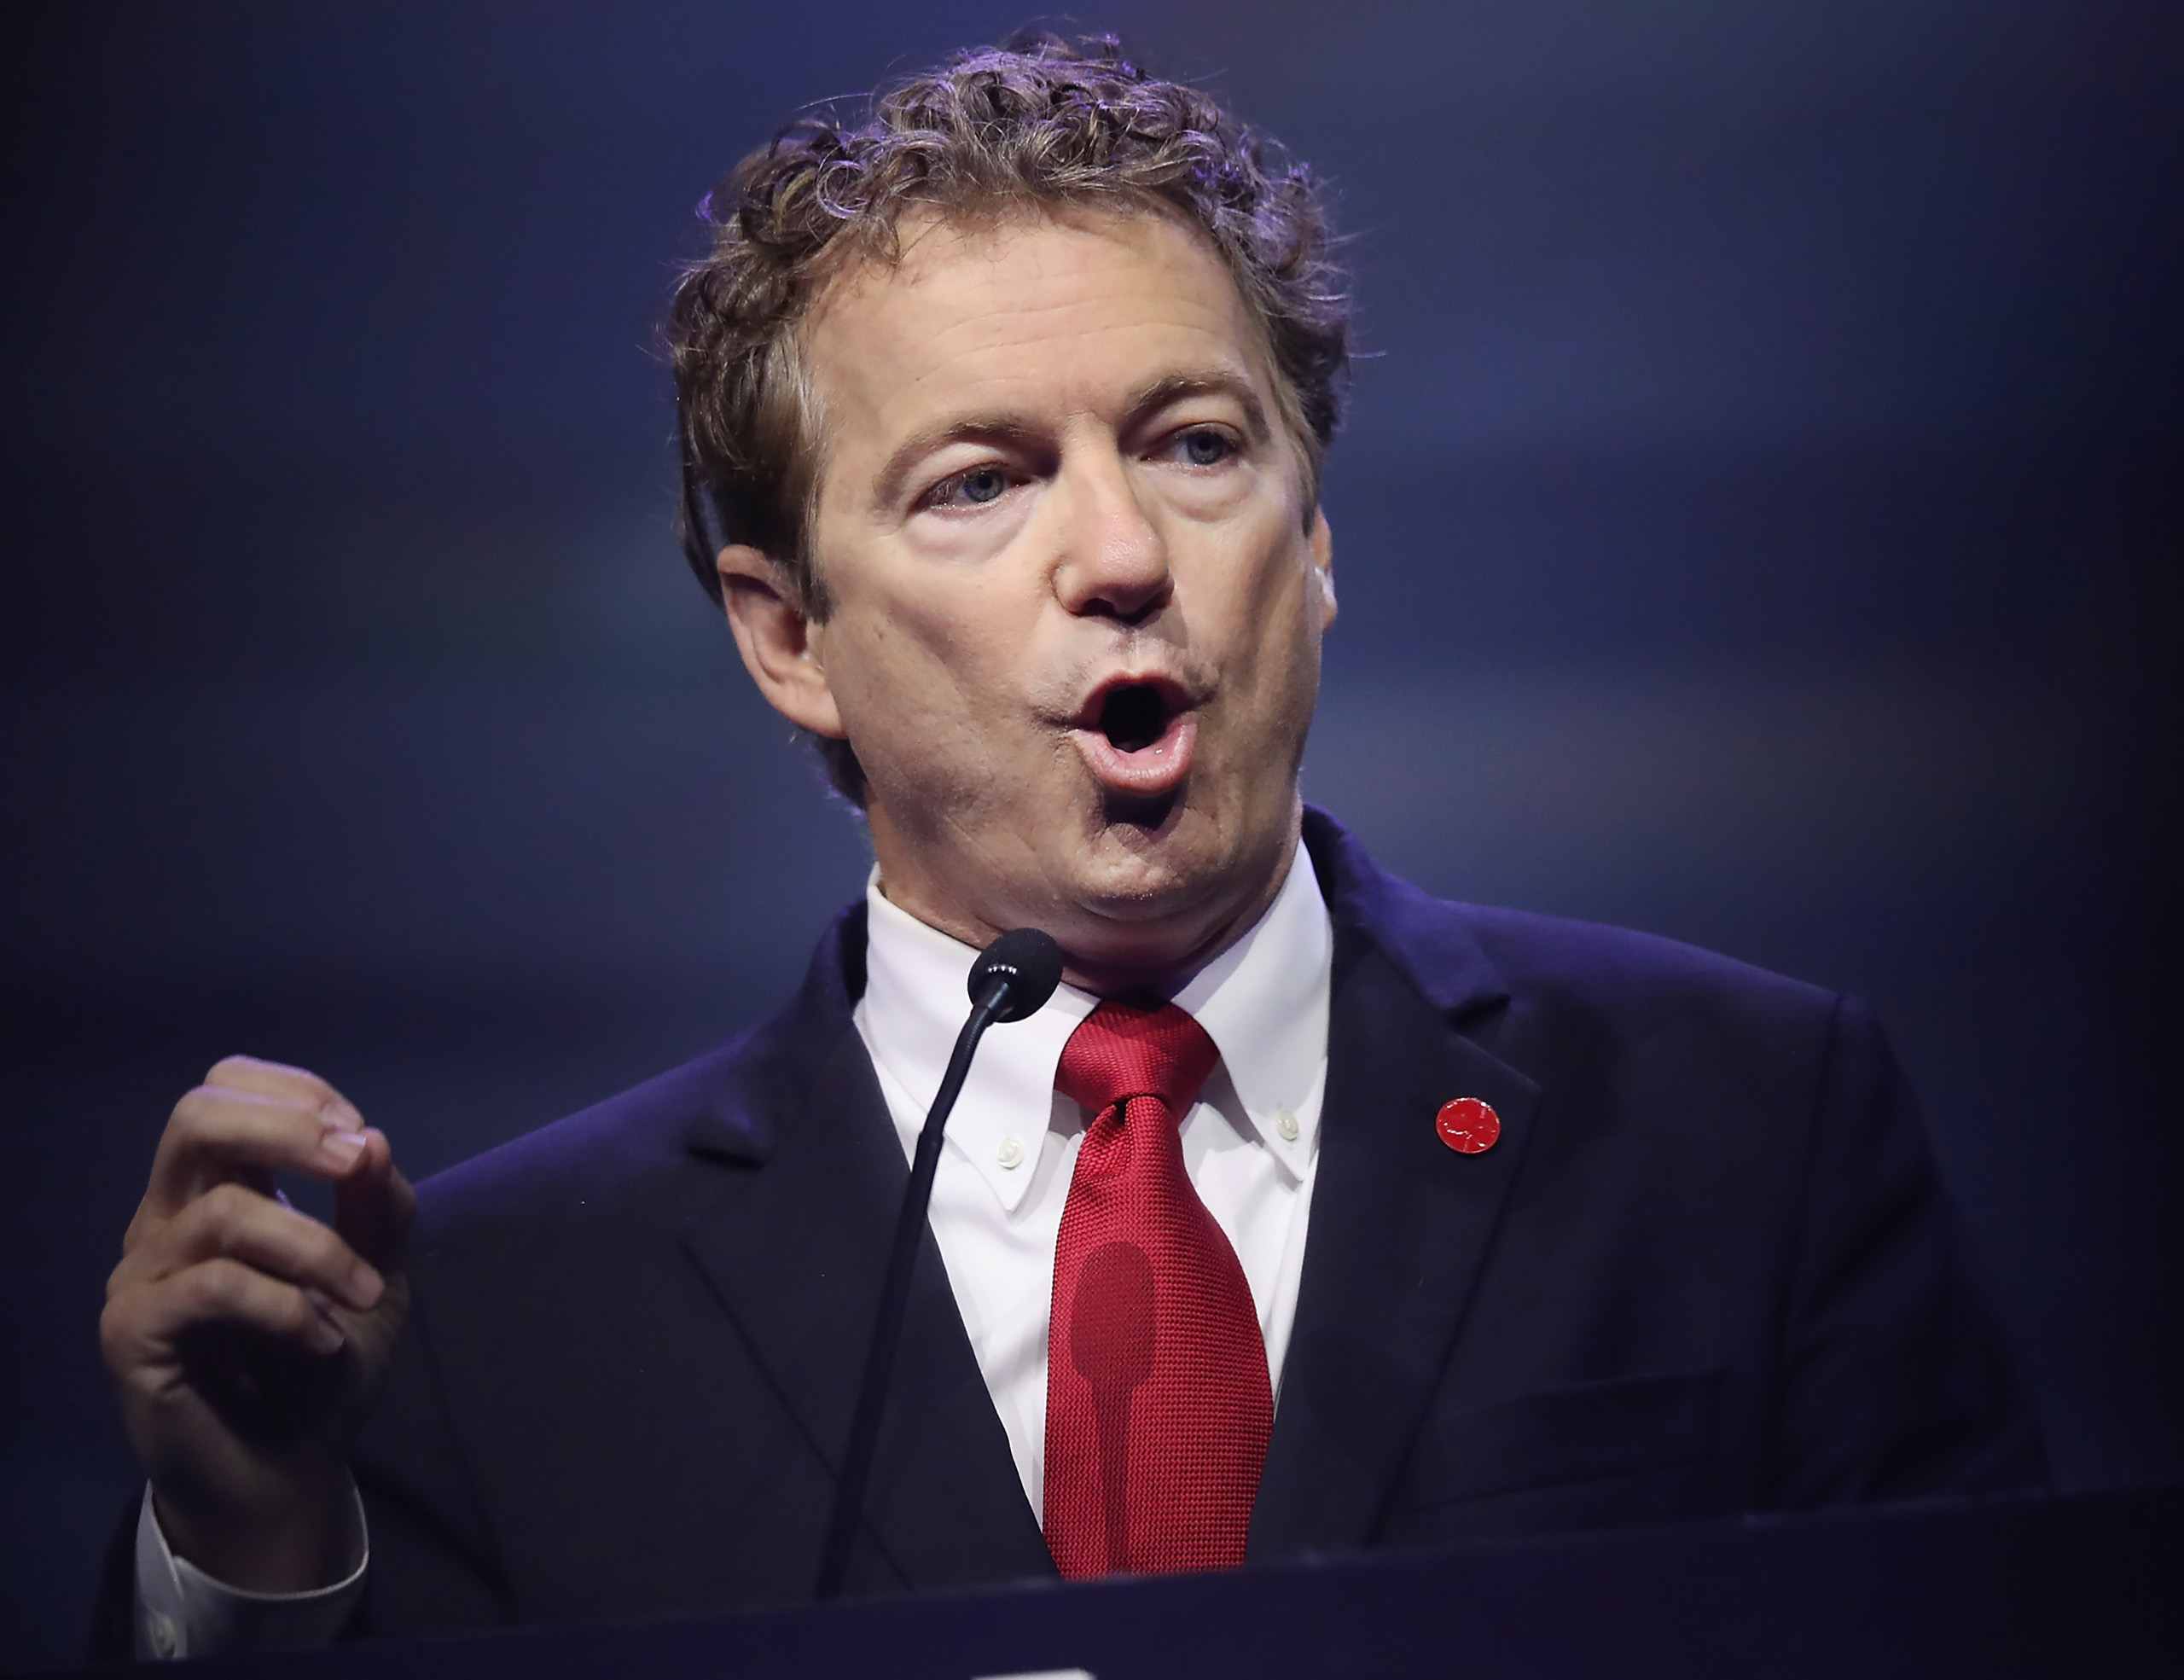 Sen. Rand Paul speaks at the National Rifle Association's NRA-ILA Leadership Forum during the NRA Convention at the Kentucky Exposition Center in Louisville, Kentucky on May 20, 2016.